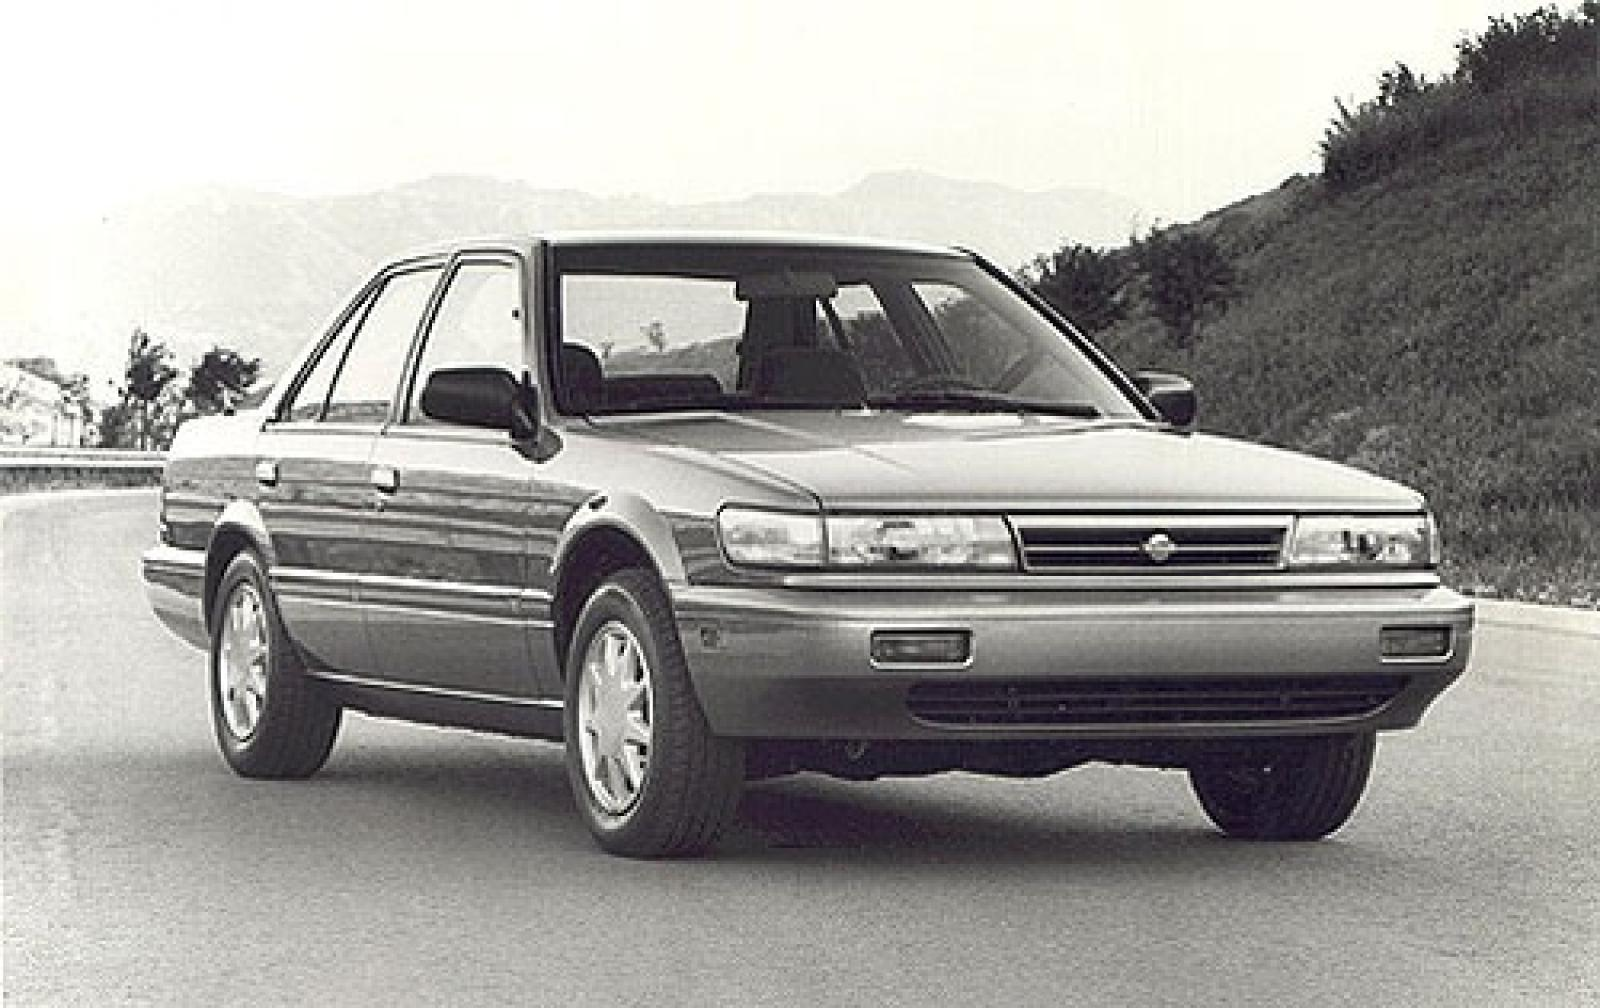 1990 Nissan Stanza - Information And Photos